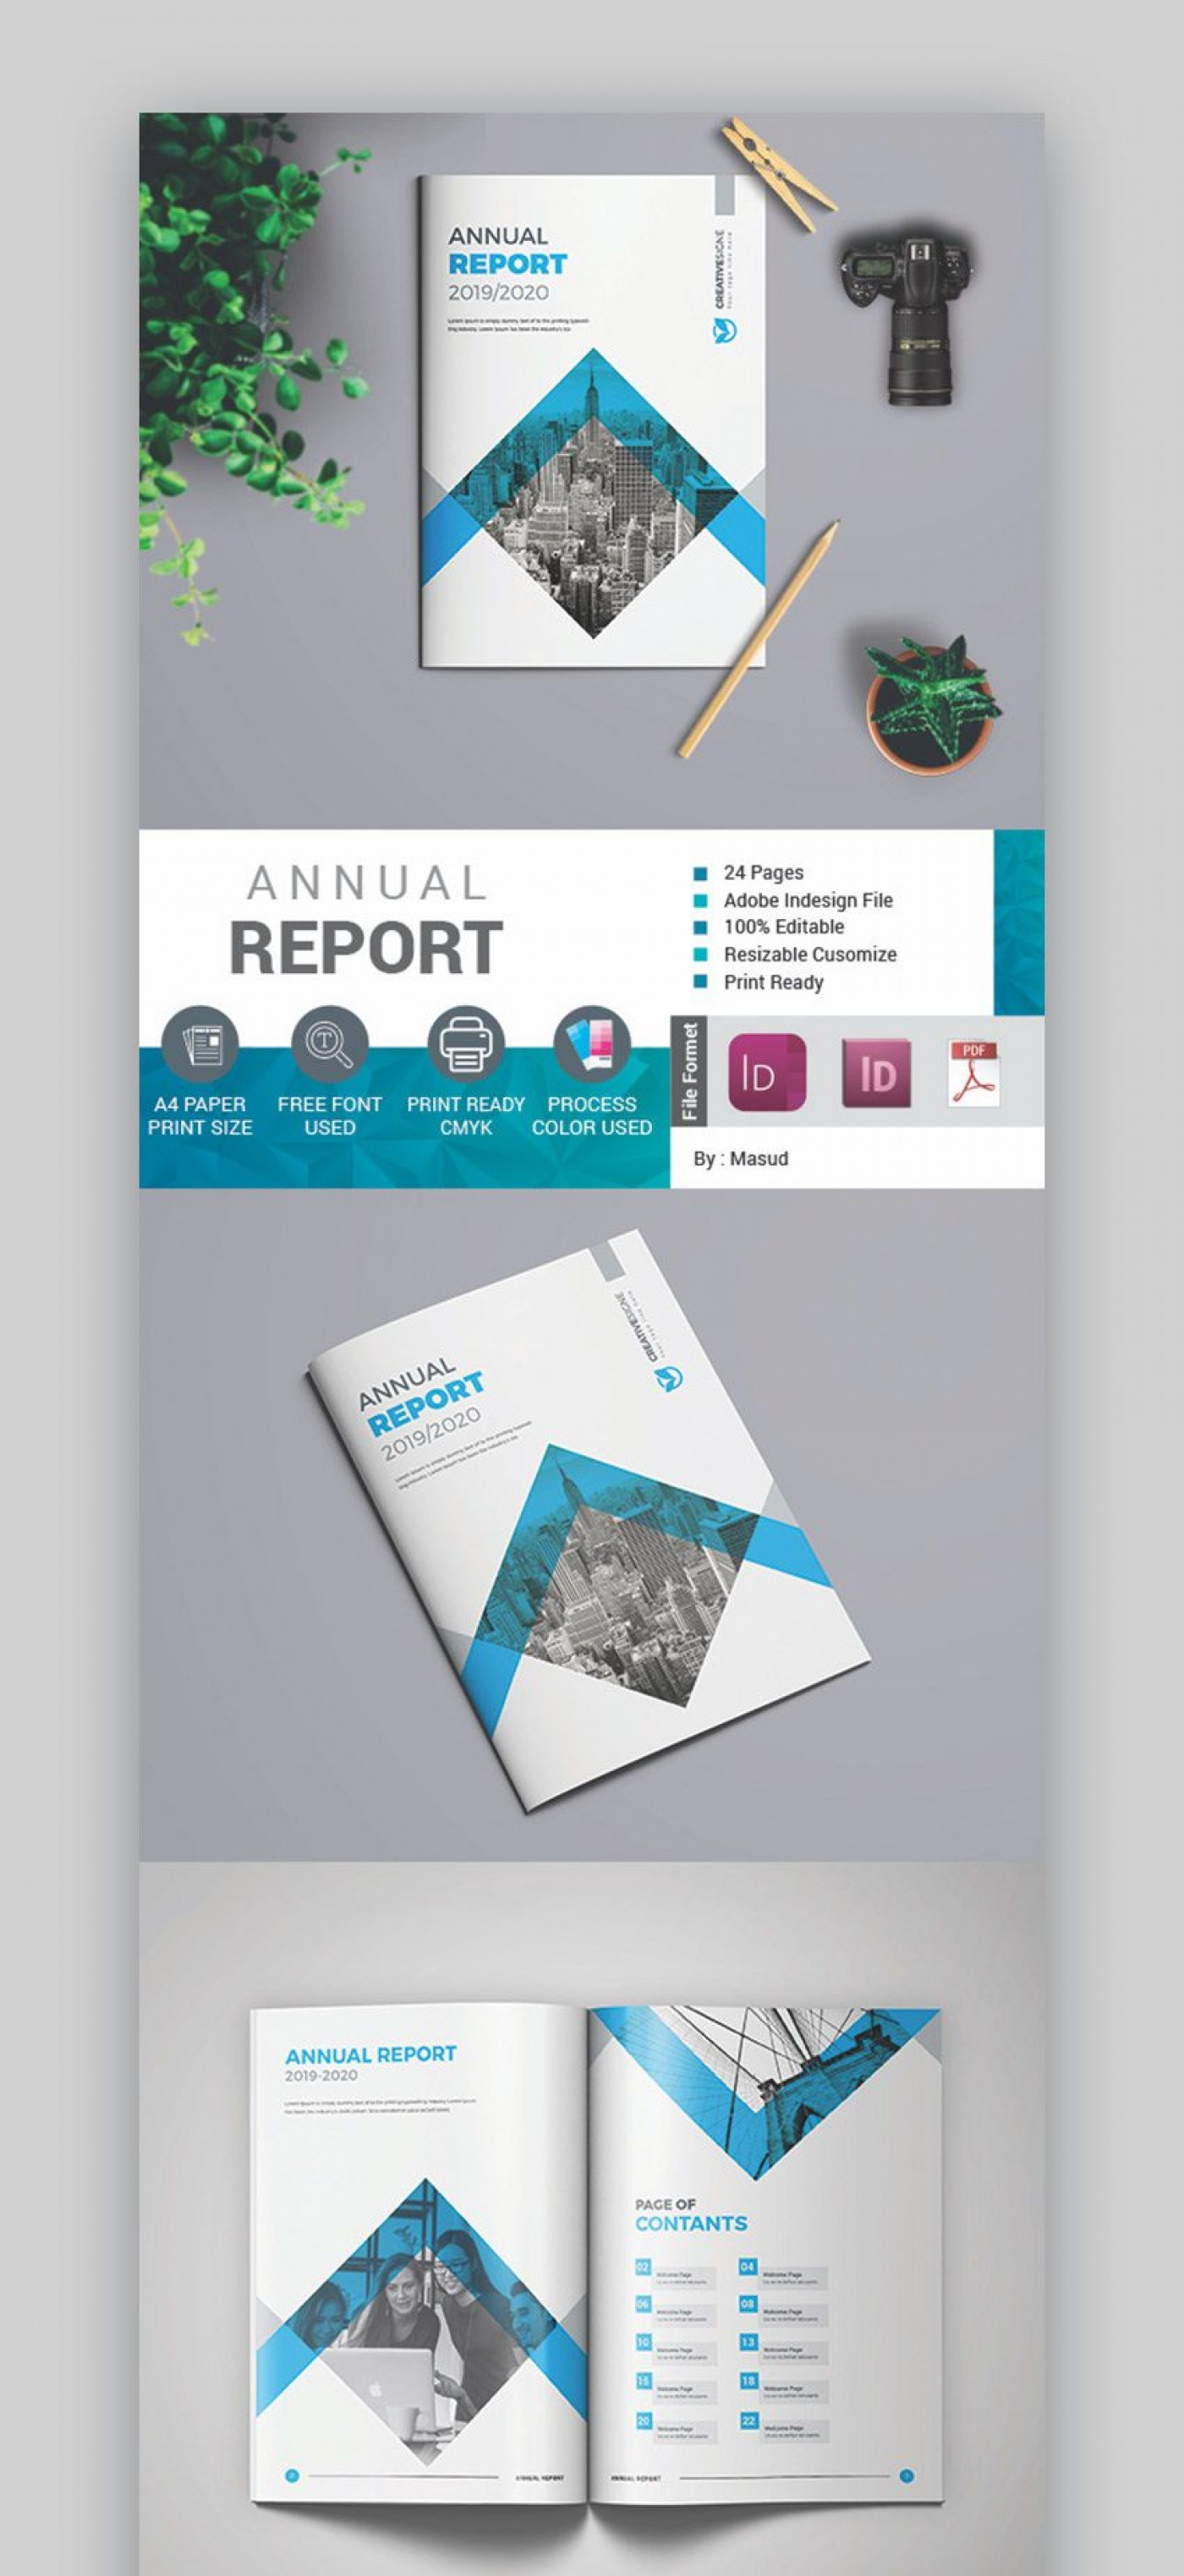 002 Archaicawful Annual Report Design Template Indesign Highest Clarity  Free Download1400